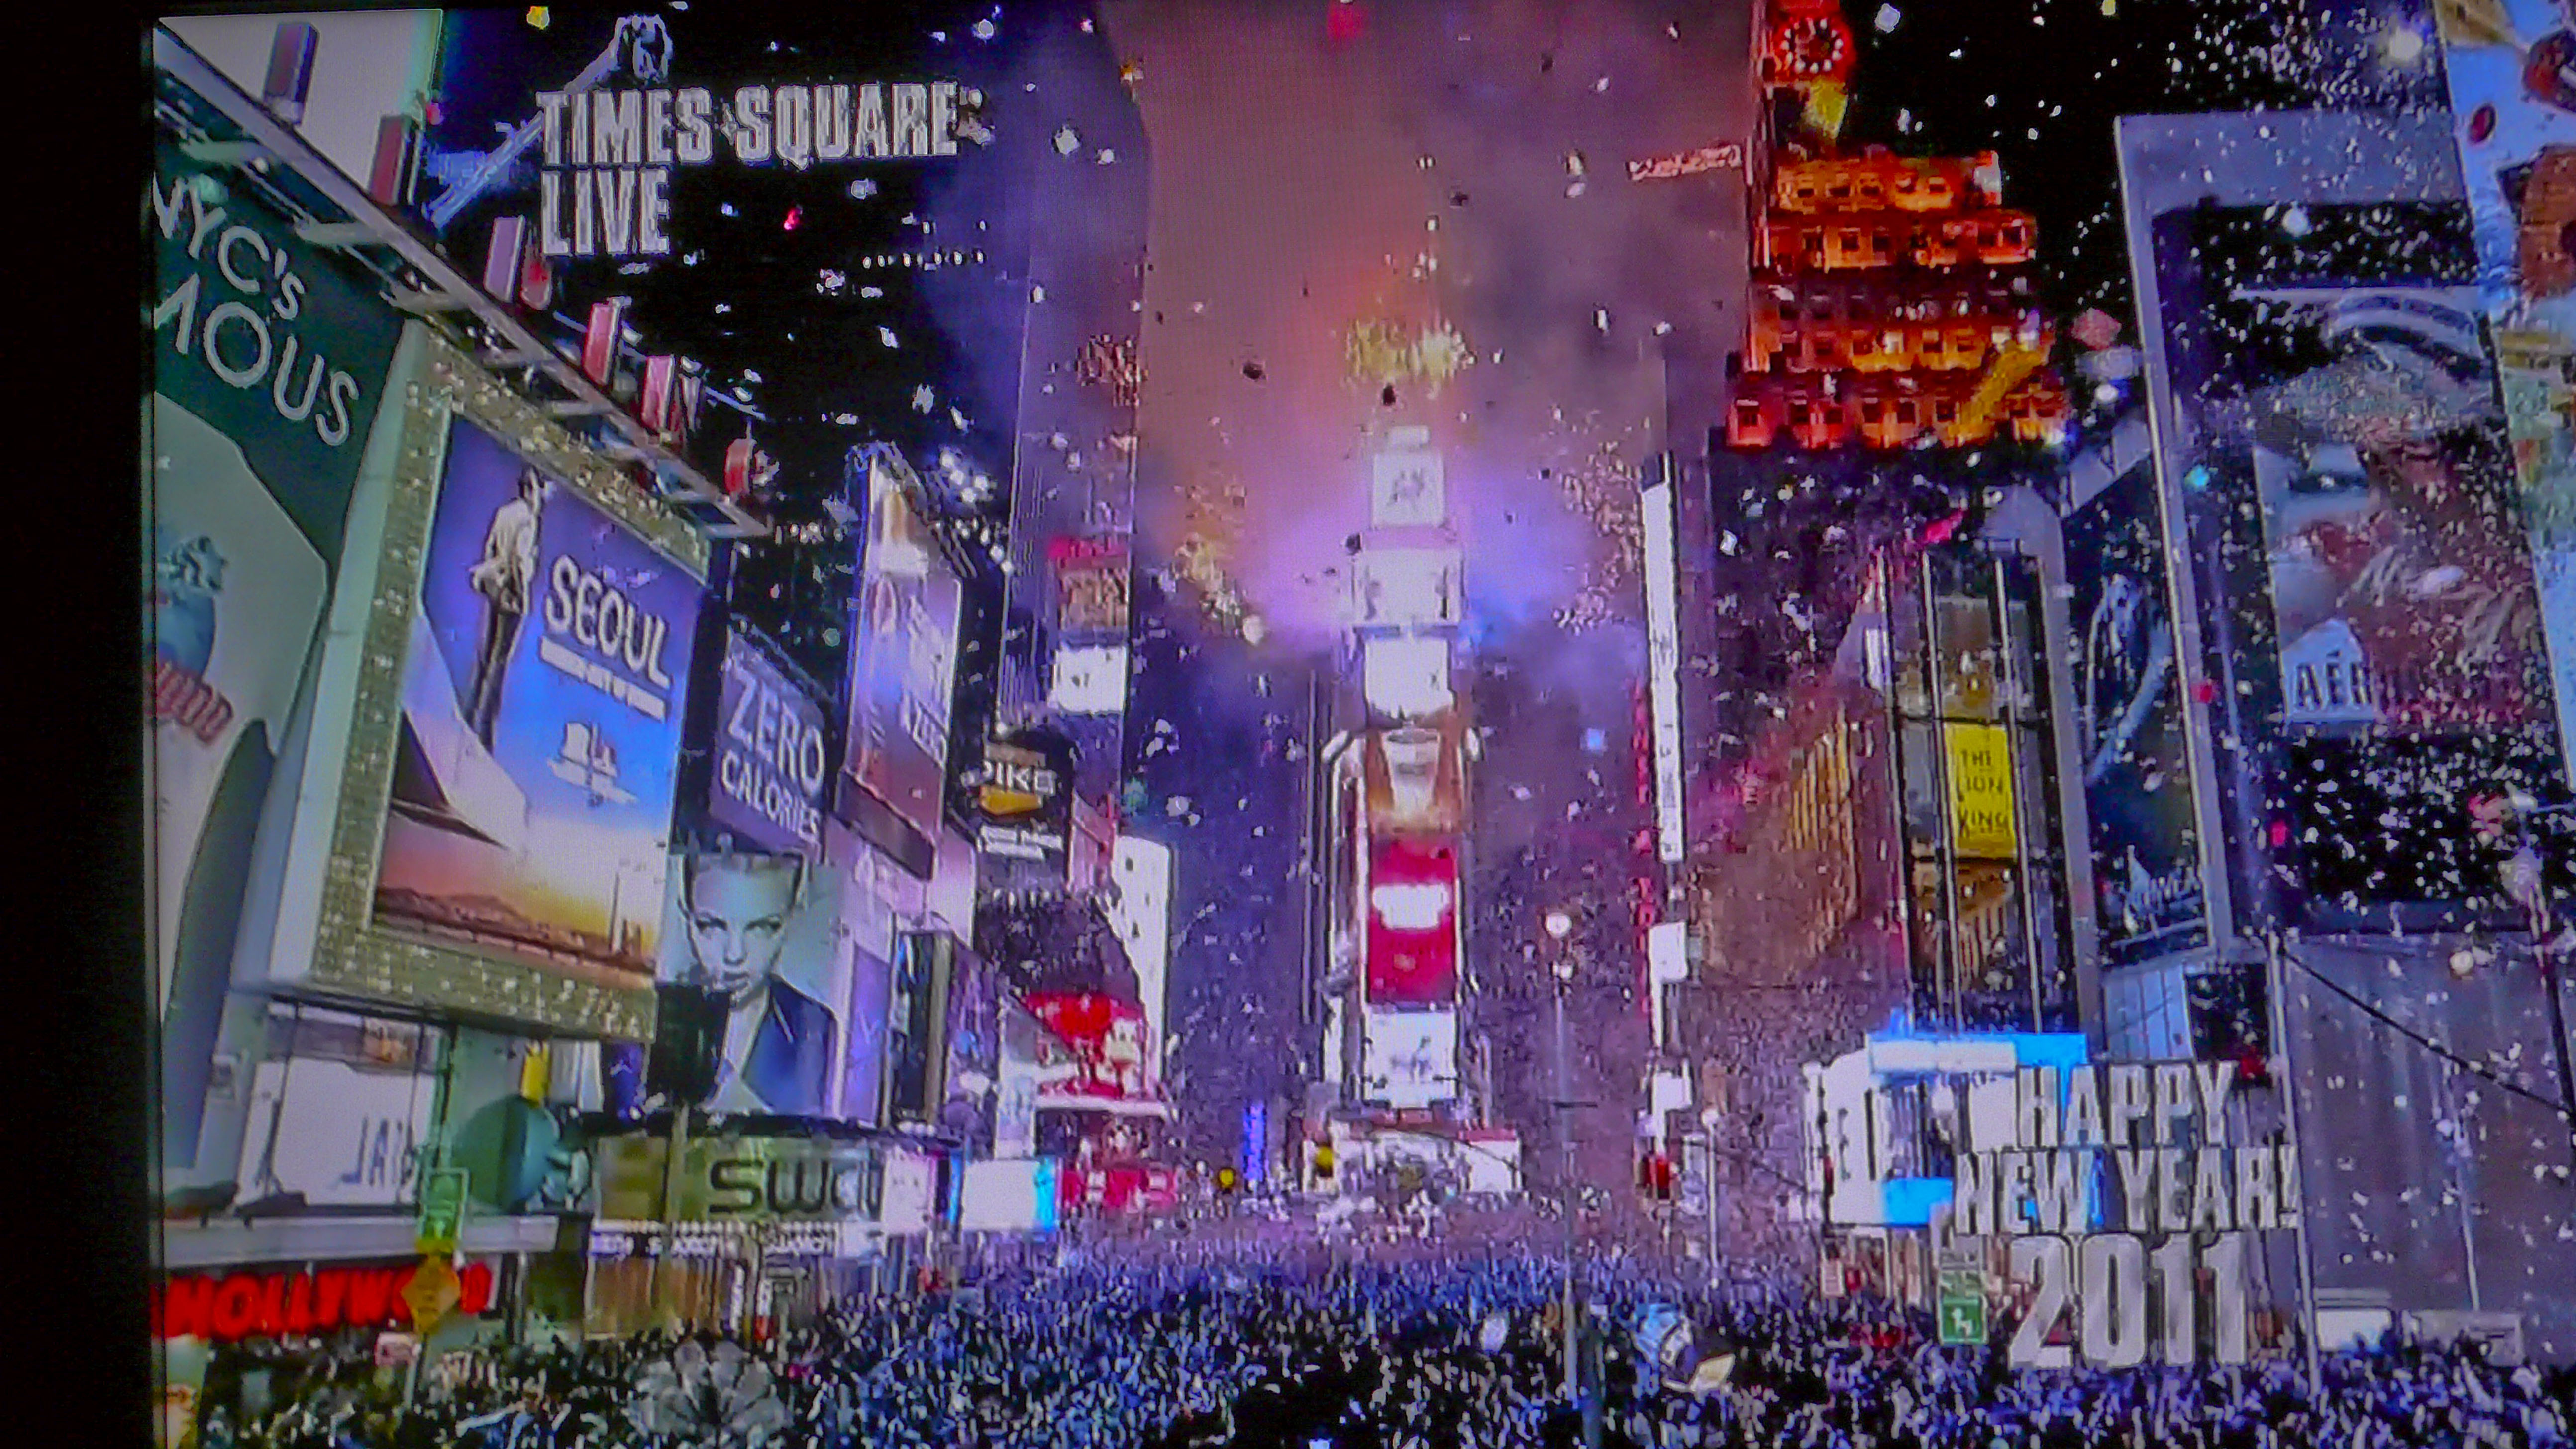 Top 10 New Year's Eve Parties in New York times square 2011 p1090149